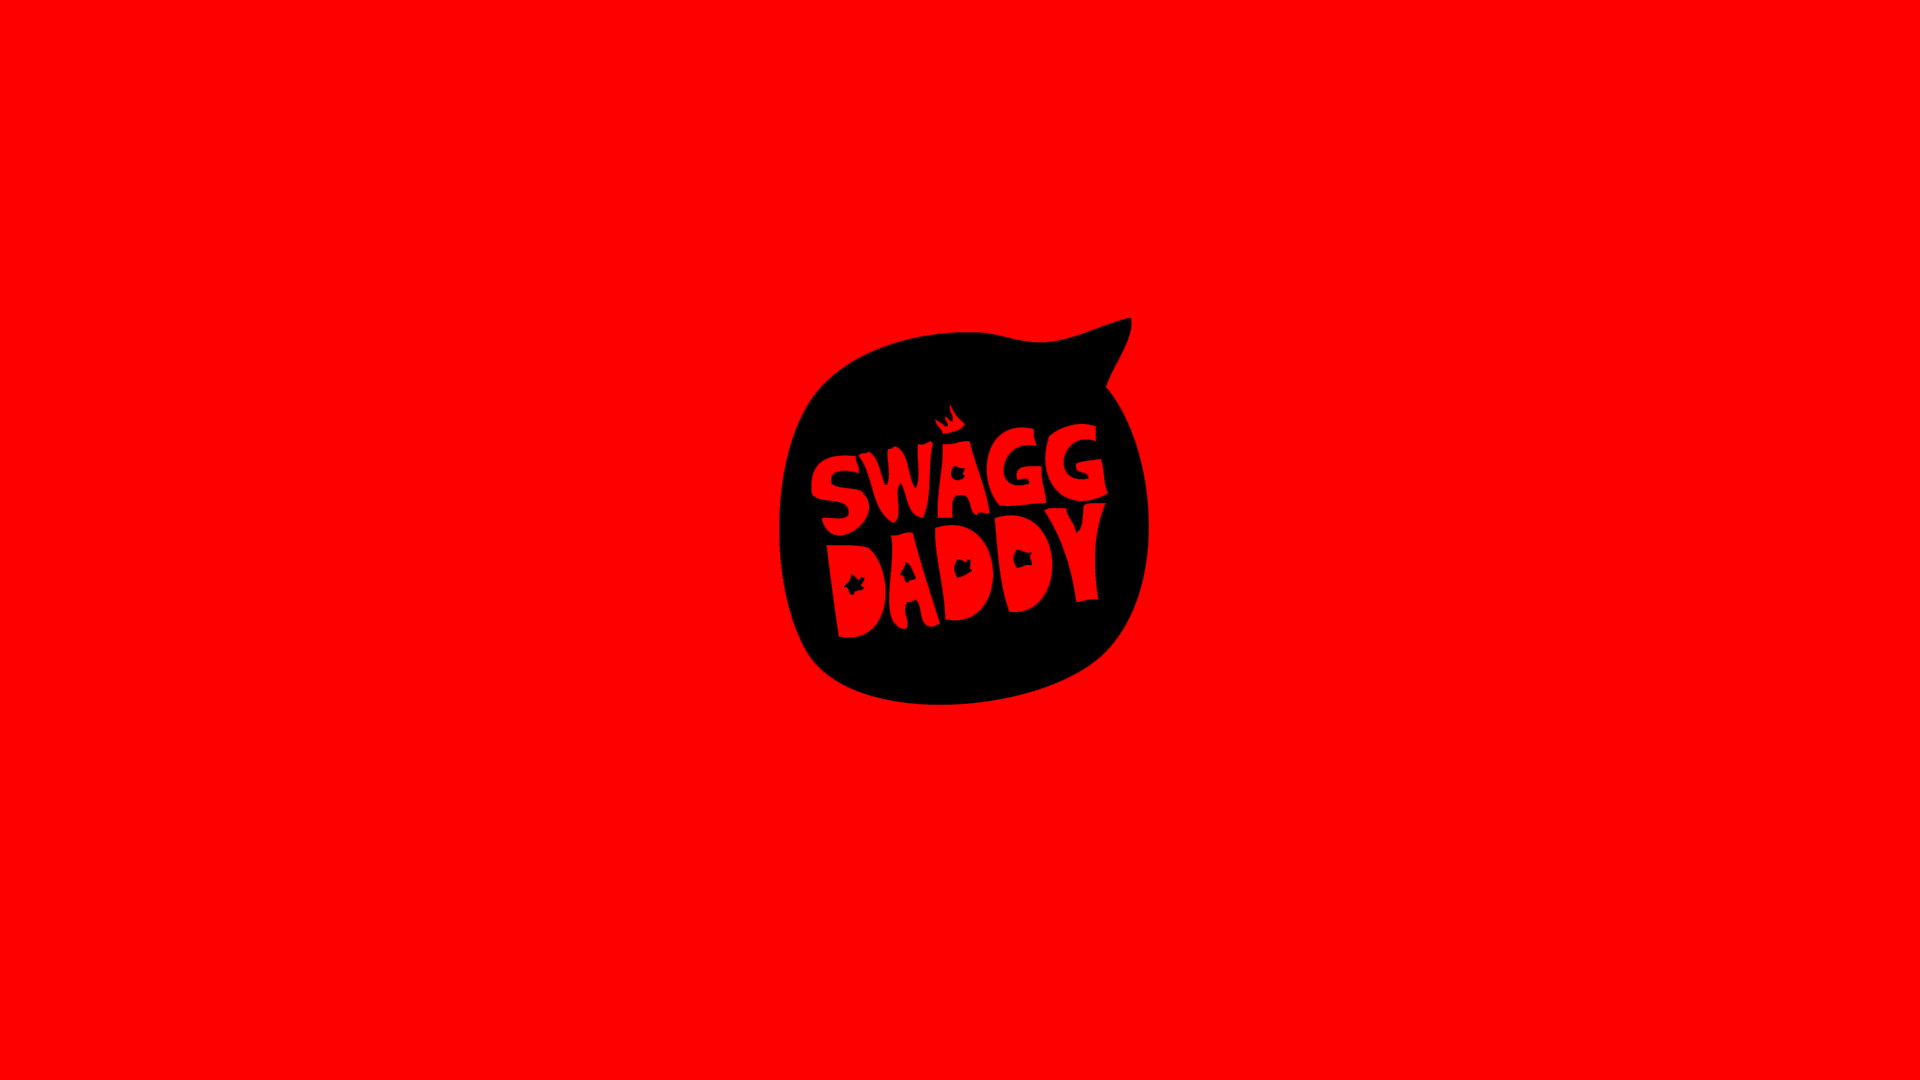 9 Swag HD Wallpapers   Backgrounds - Wallpaper Abyss